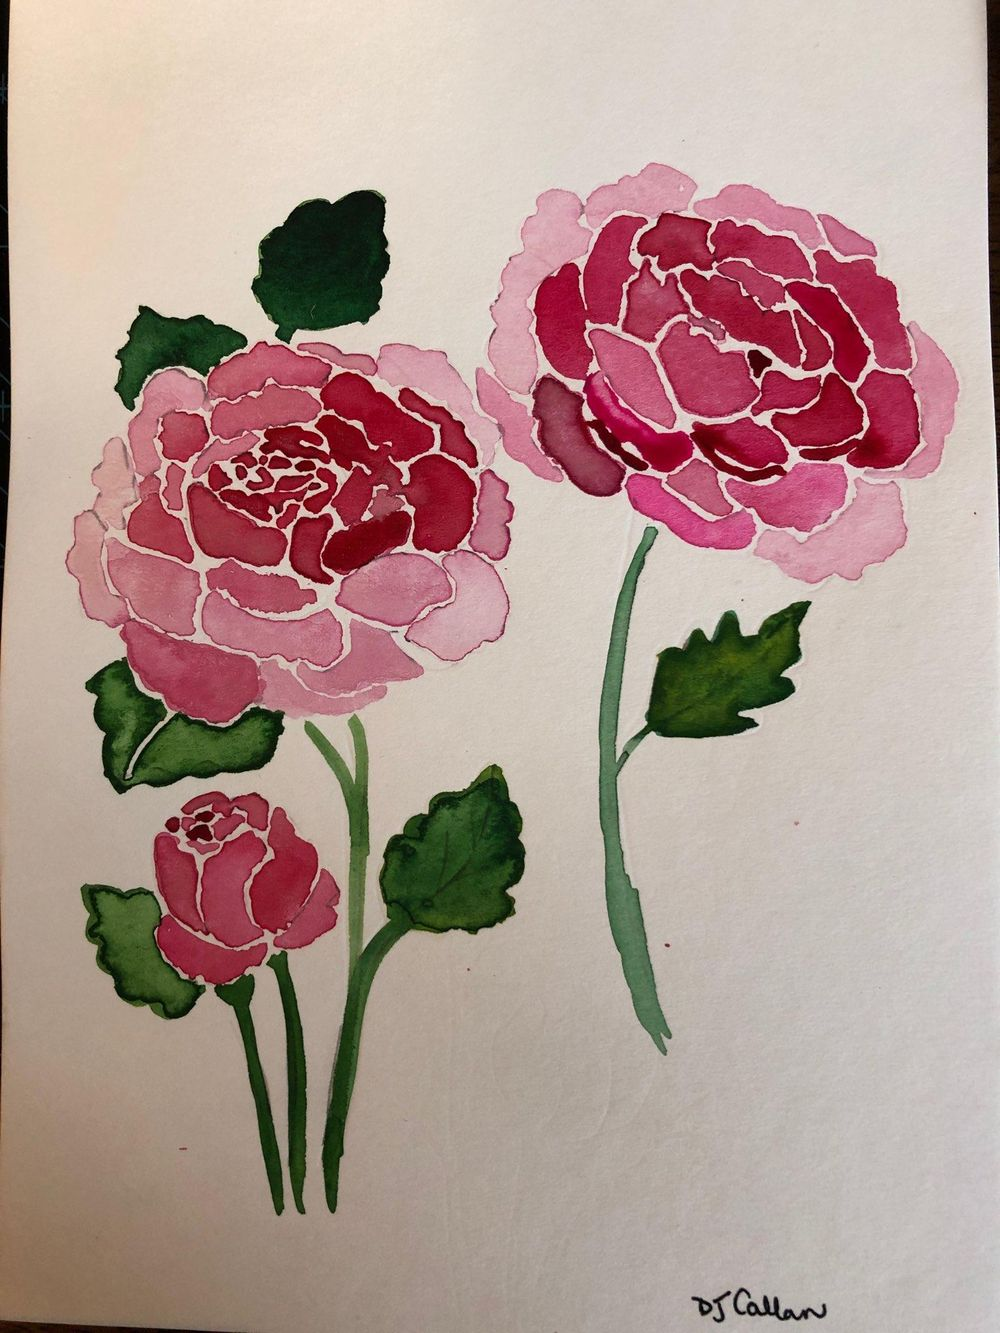 Modern Botanical Watercolors - What a Blast! - image 8 - student project